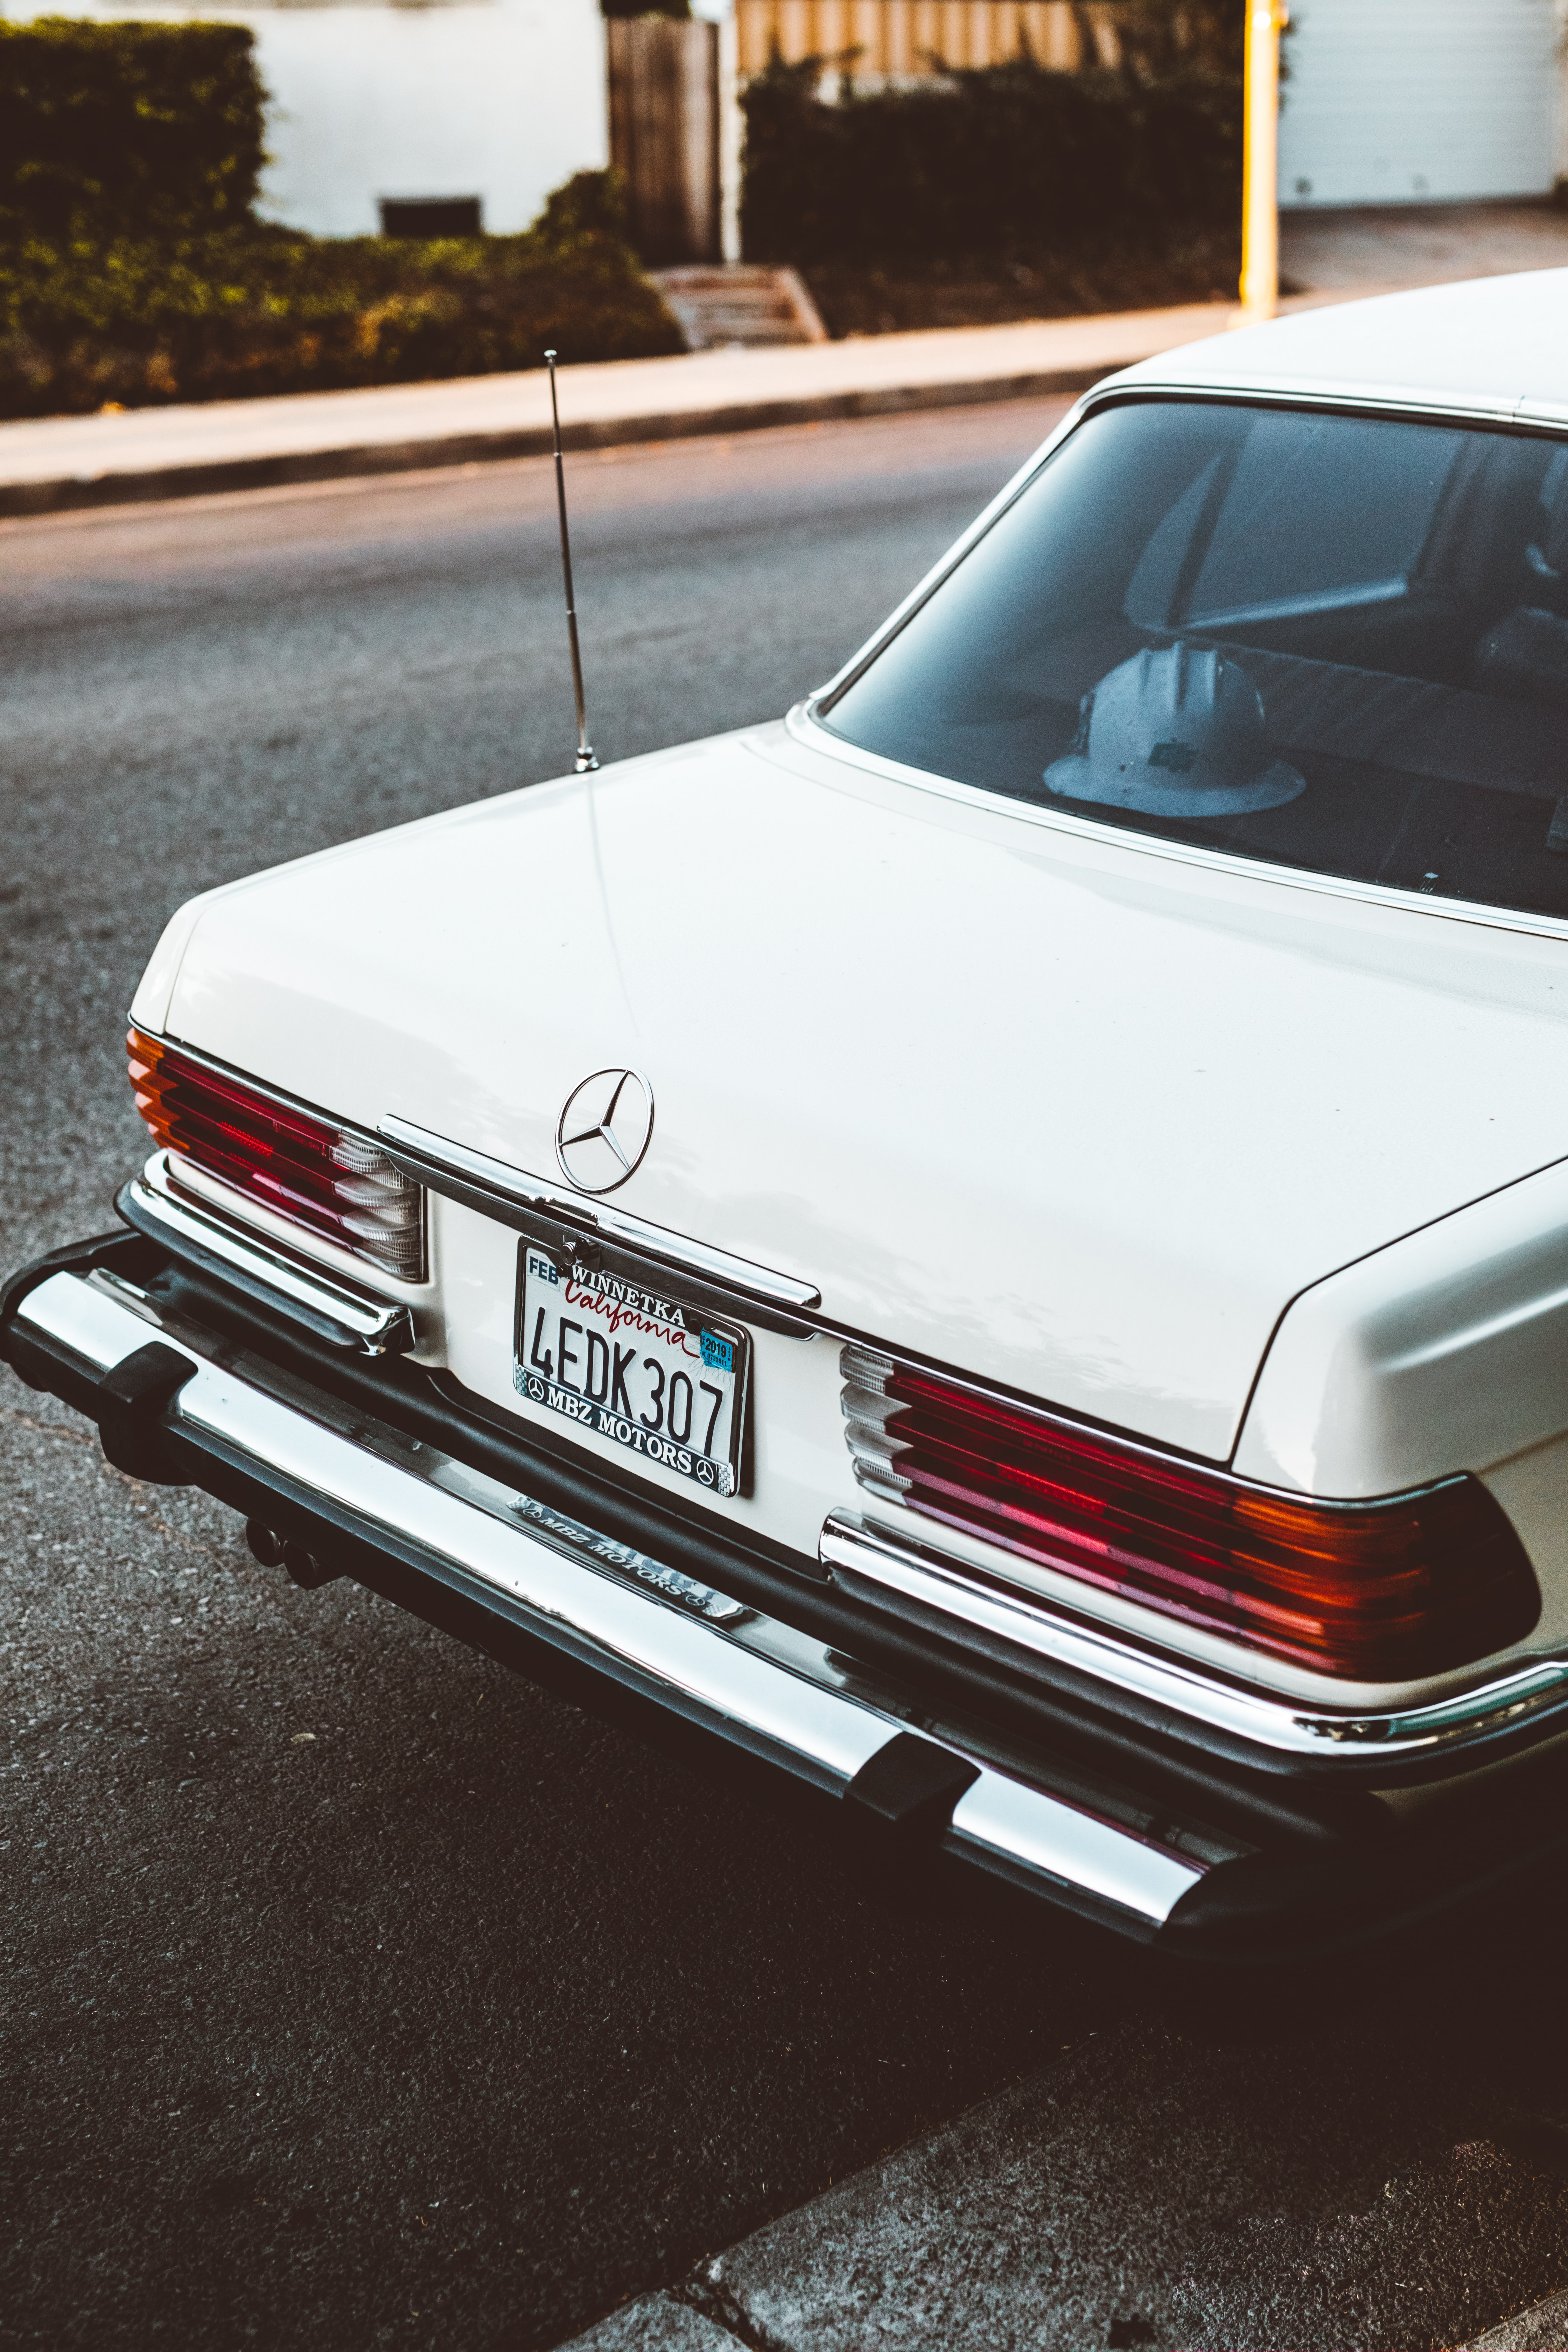 white Mercedes-Benz car parked on road